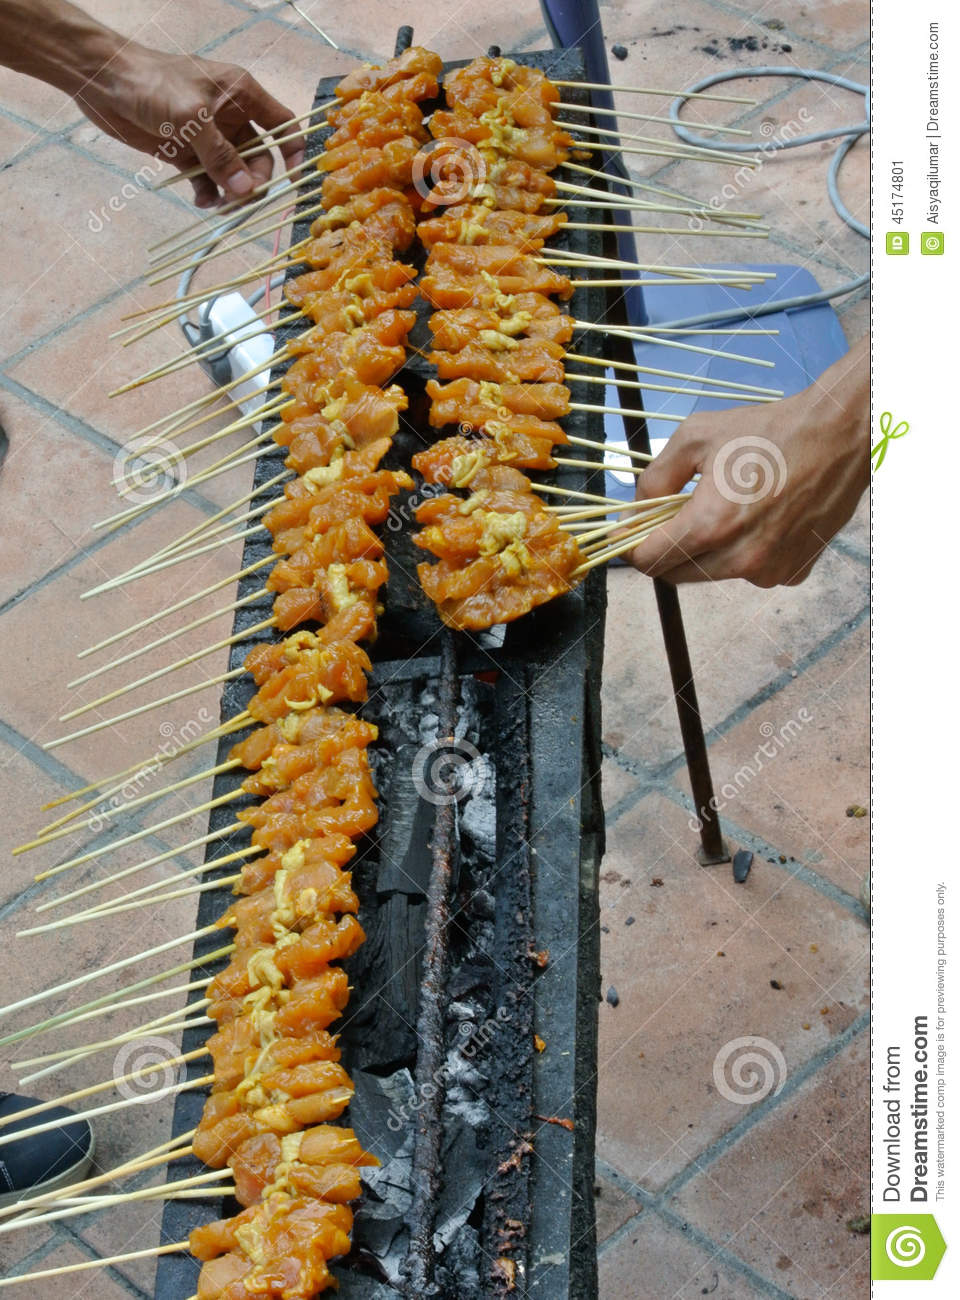 Malaysia Chicken Satay Cooking On A Hot Charcoal Grill Stock Photo ...